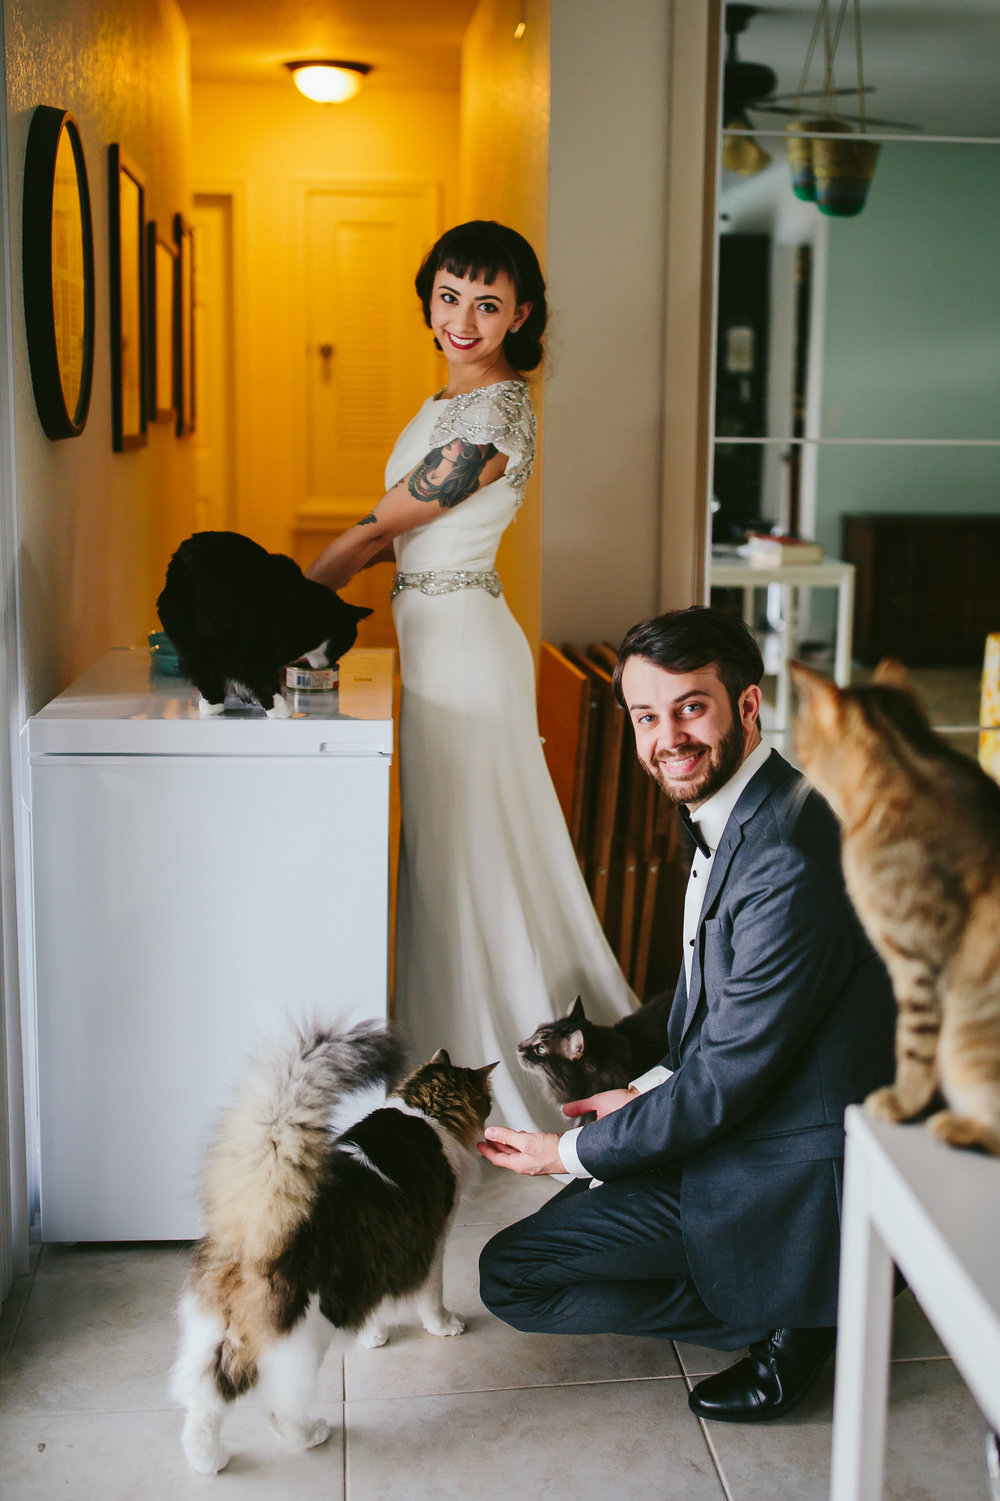 bride_and_groom_cats_in_home_session_wedding_fort_lauderdale_photographer_steph_lynn_photo-94.jpg